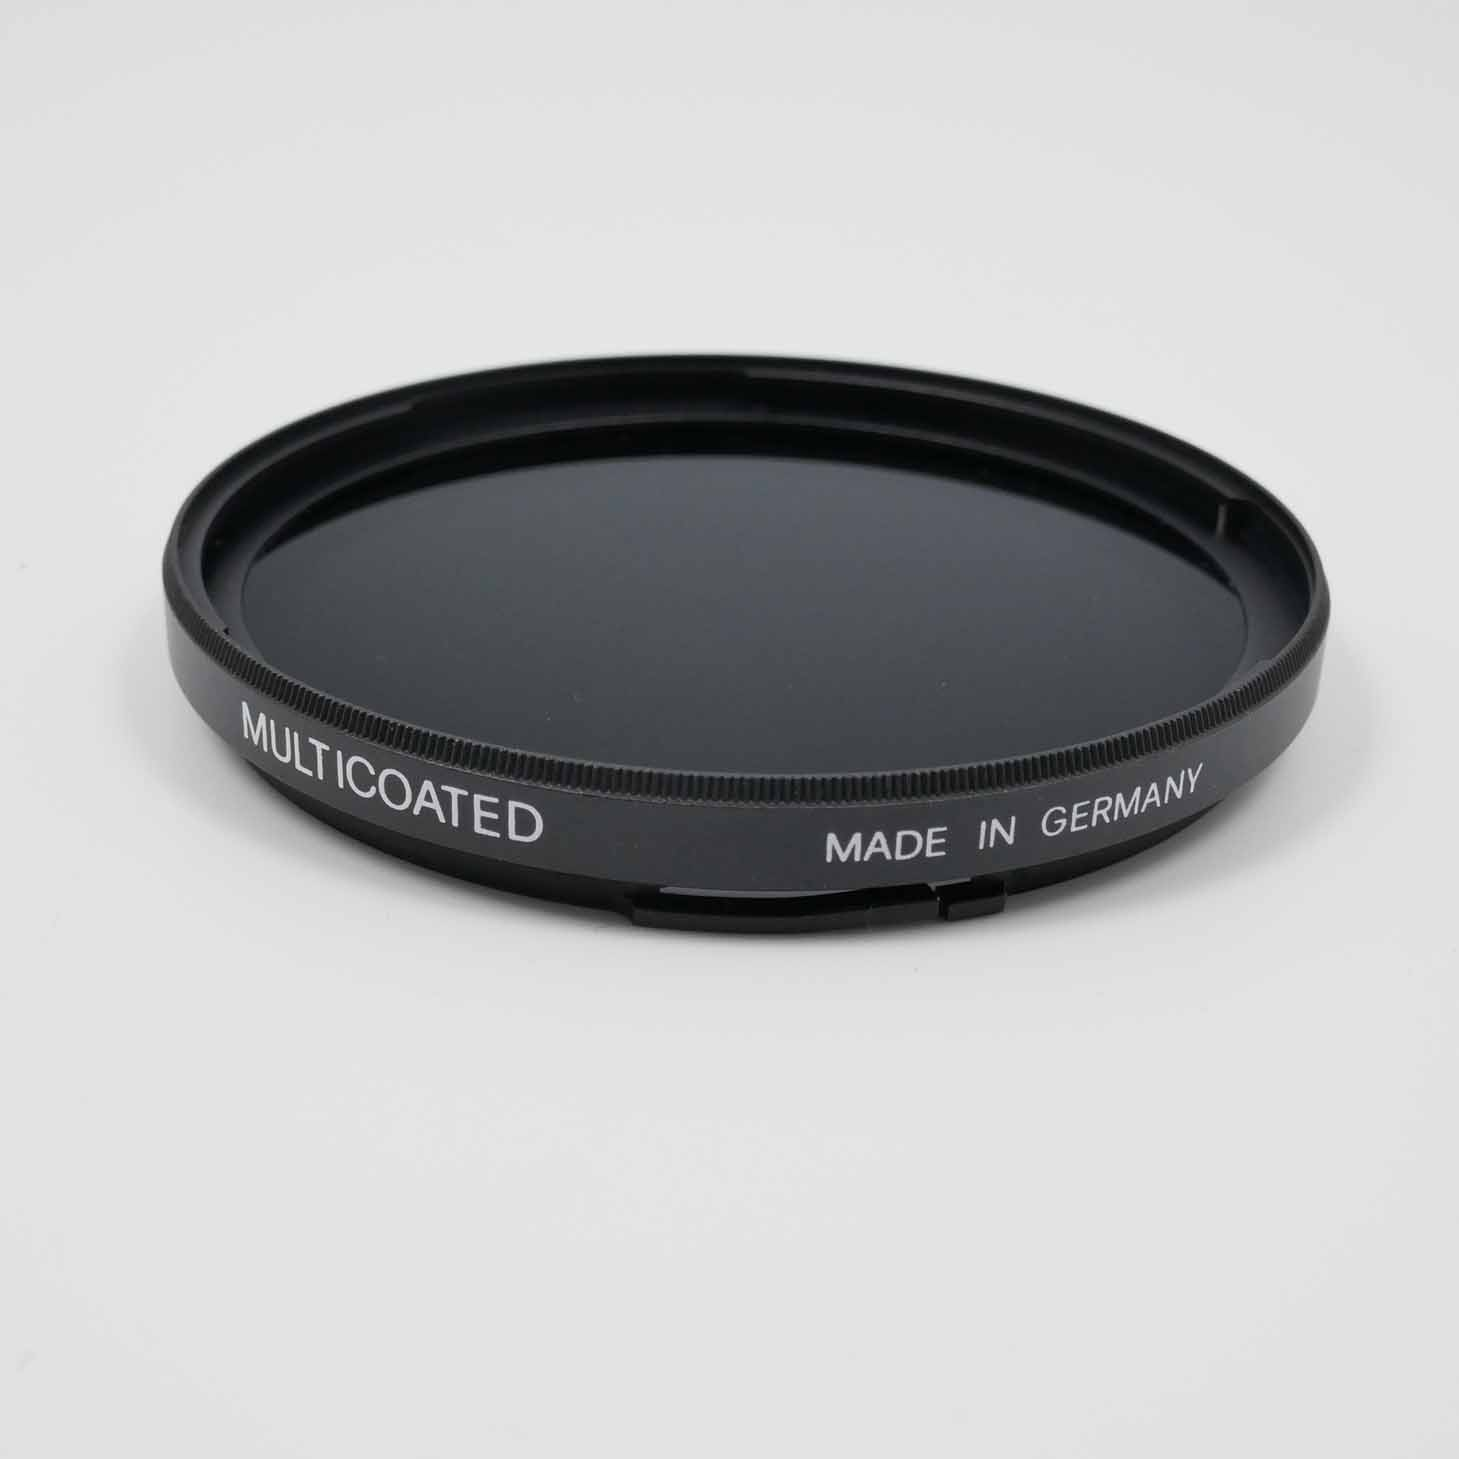 clean-cameras-photo-Hasselblad-Graufilter-05